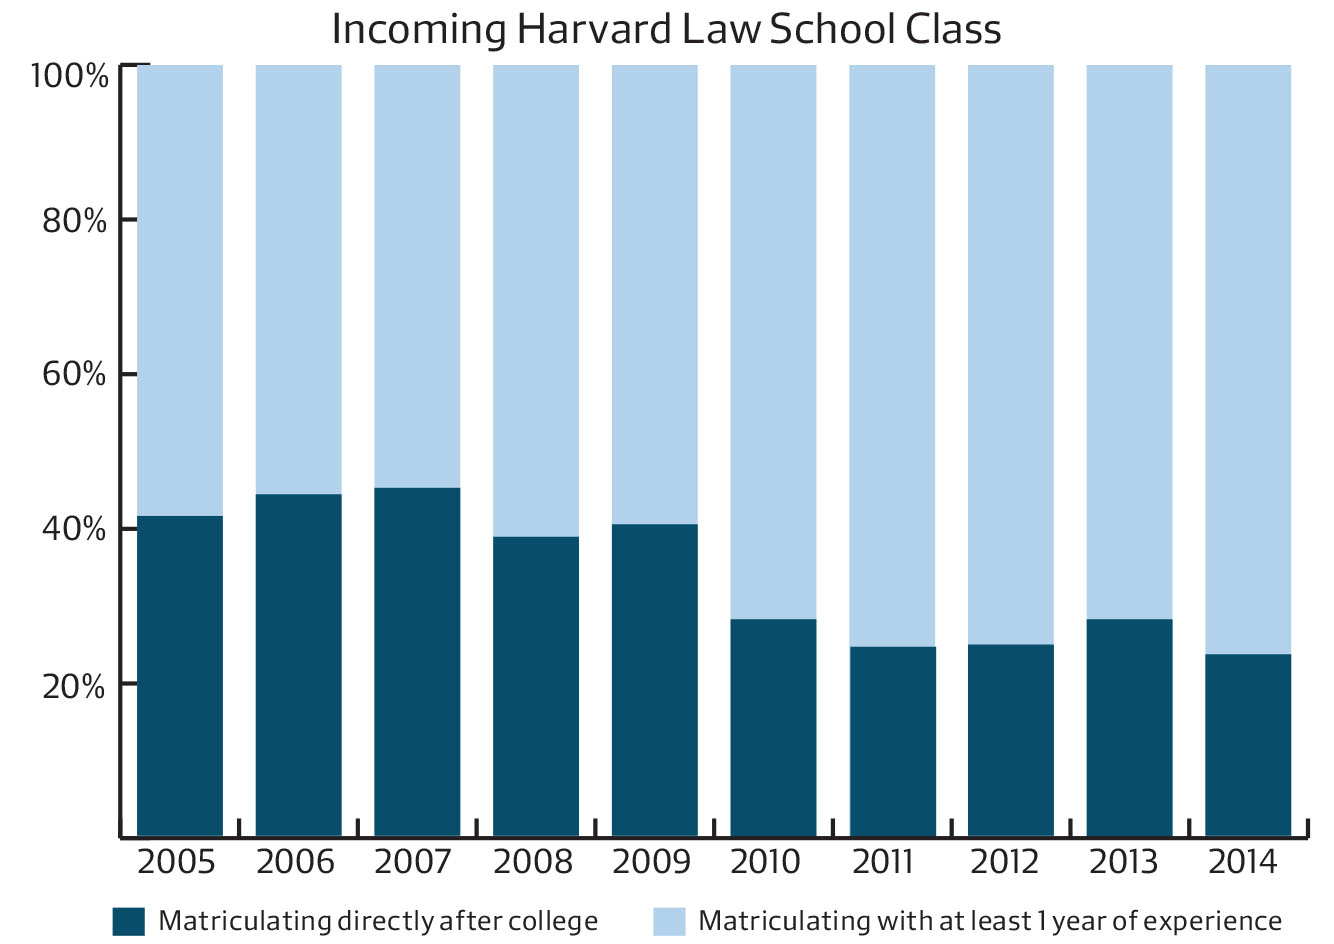 Roughly three-fourths of each incoming class of Harvard Law School students have come to campus with some post-college experience for the last several years.